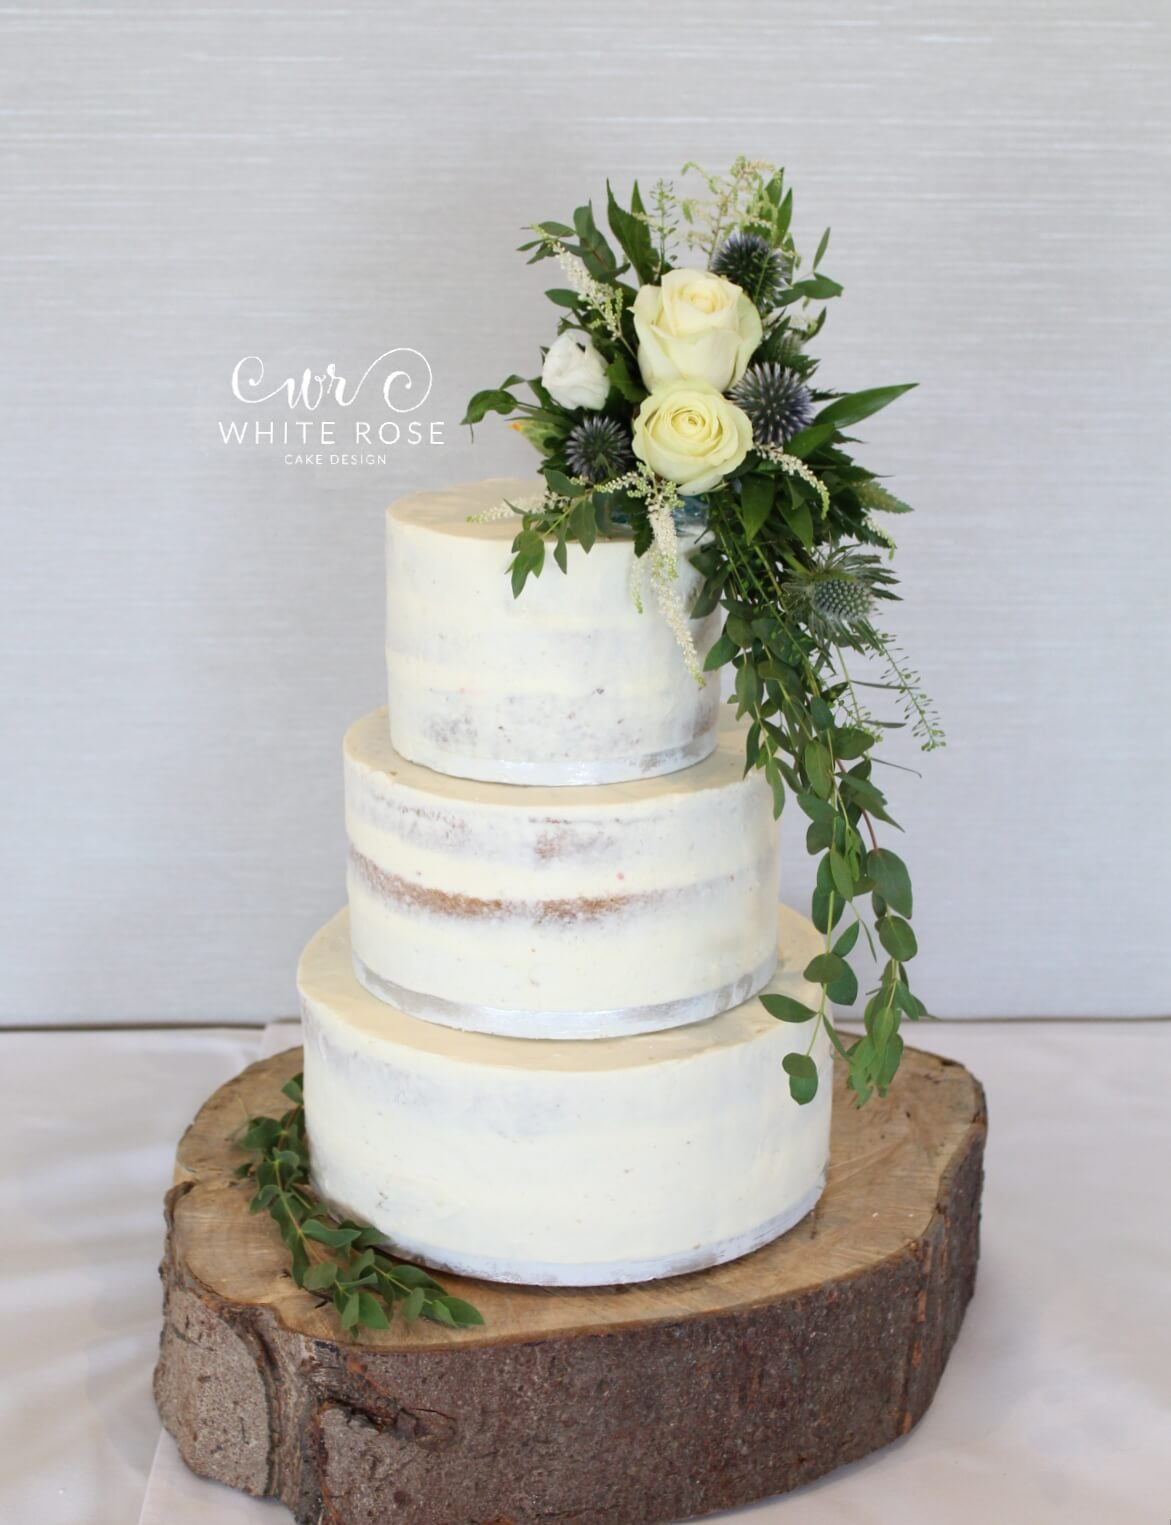 Rustic Semi-Naked Wedding Cake with Fresh Flowers at The Fleece Inn on rustic log stand by White Rose Cake Design Cake Maker in Halifax Huddersfield Holmfirth West Yorkshire